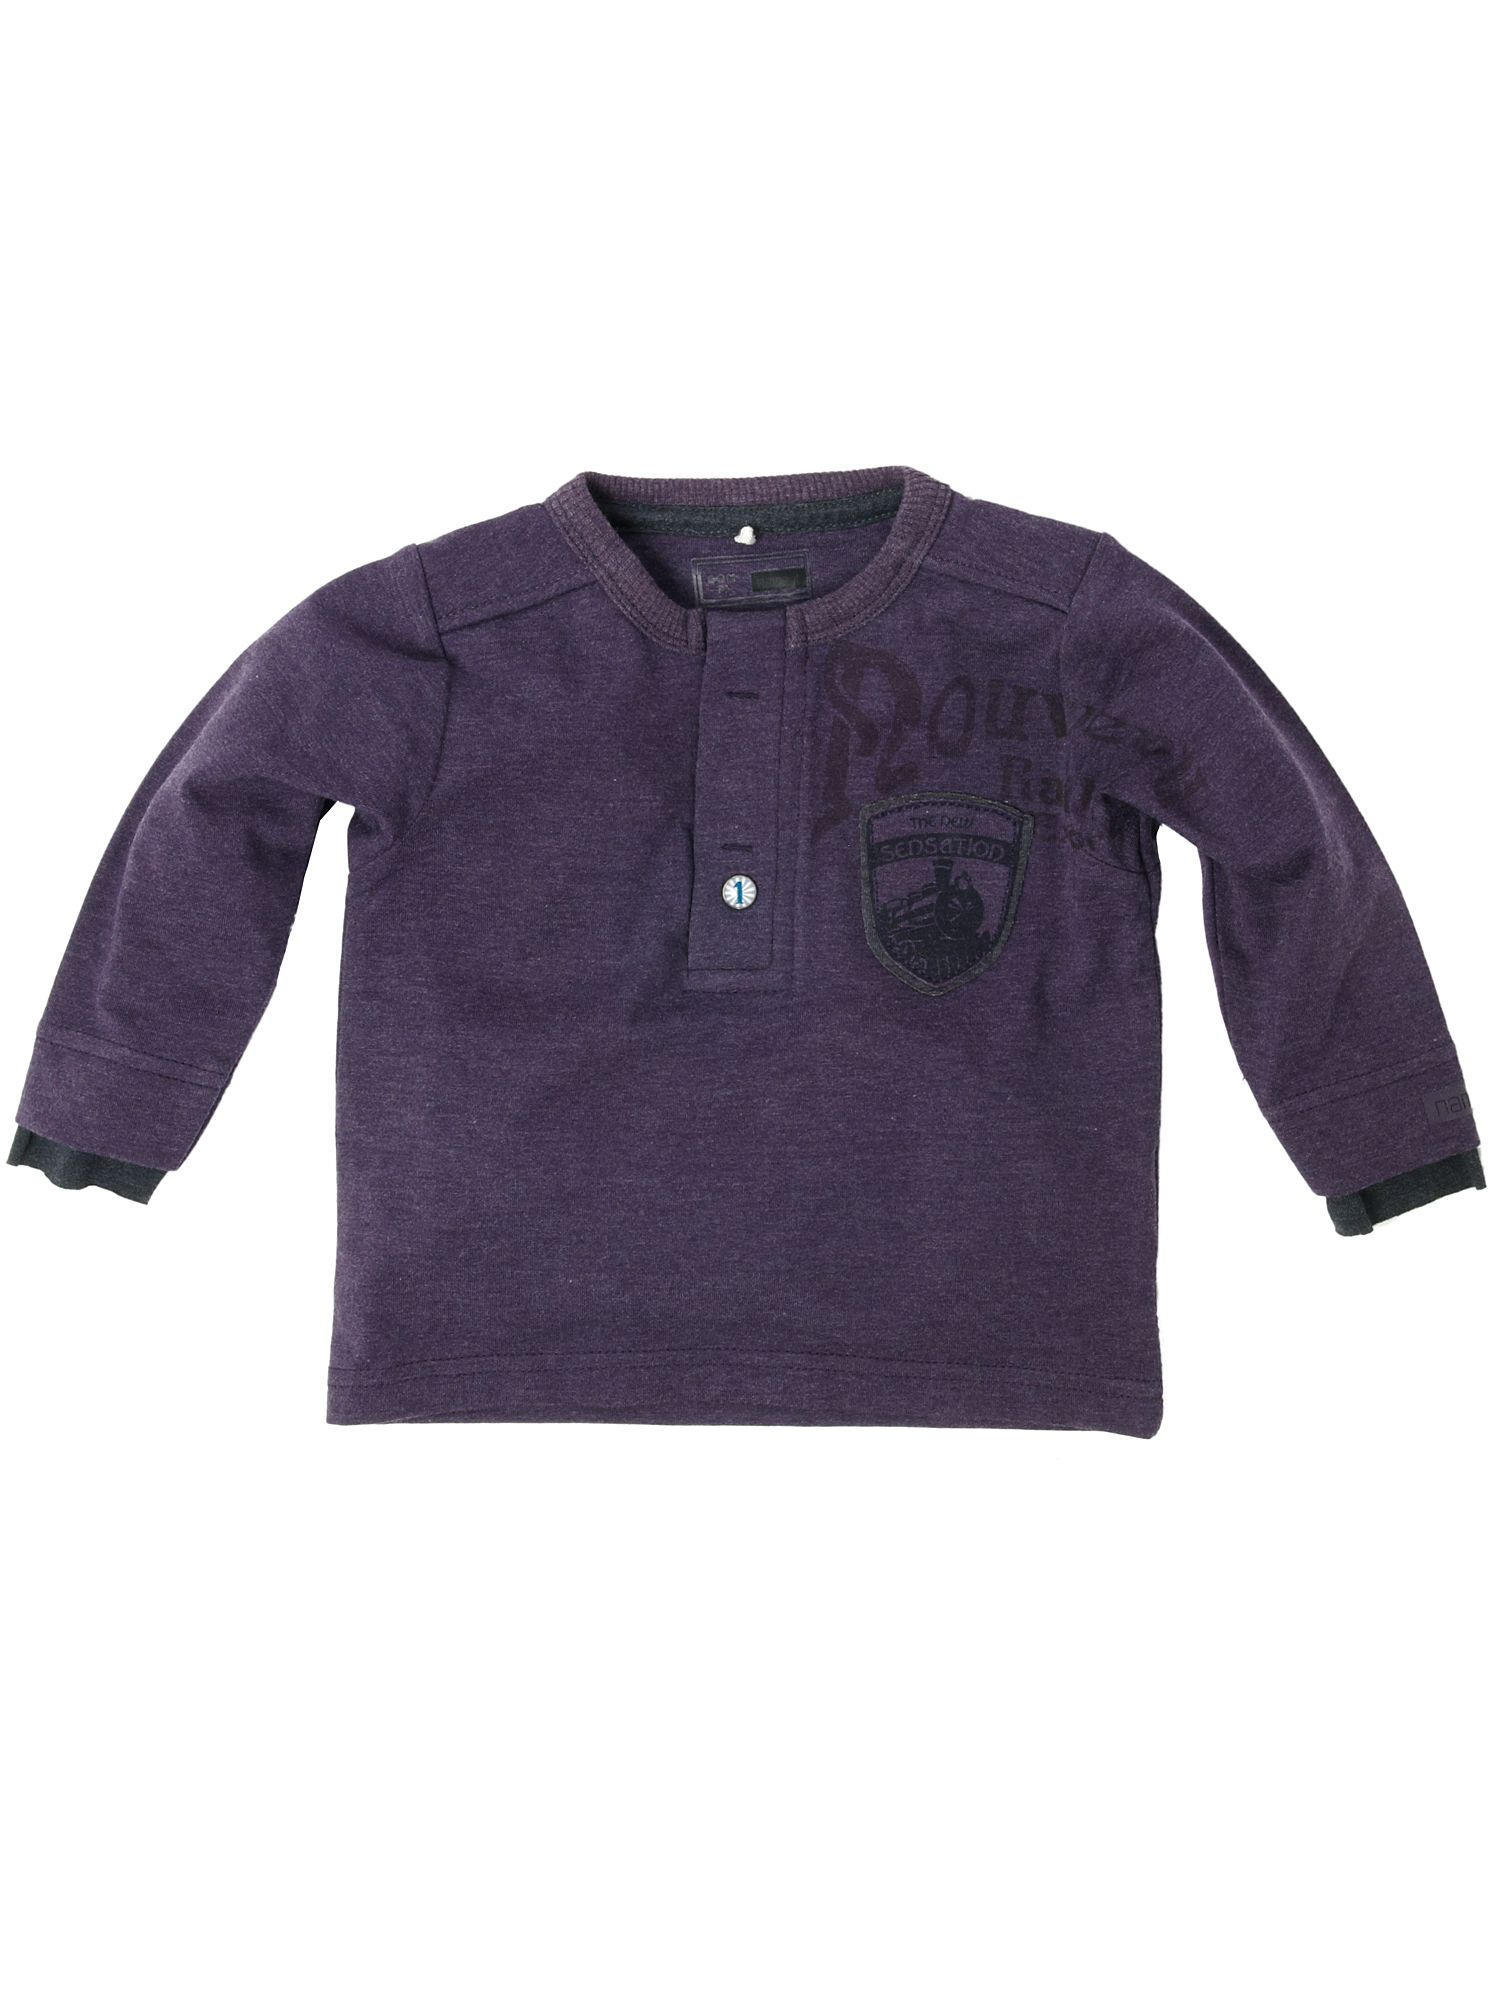 Name It Long-sleeved henley style T-shirt Purple product image